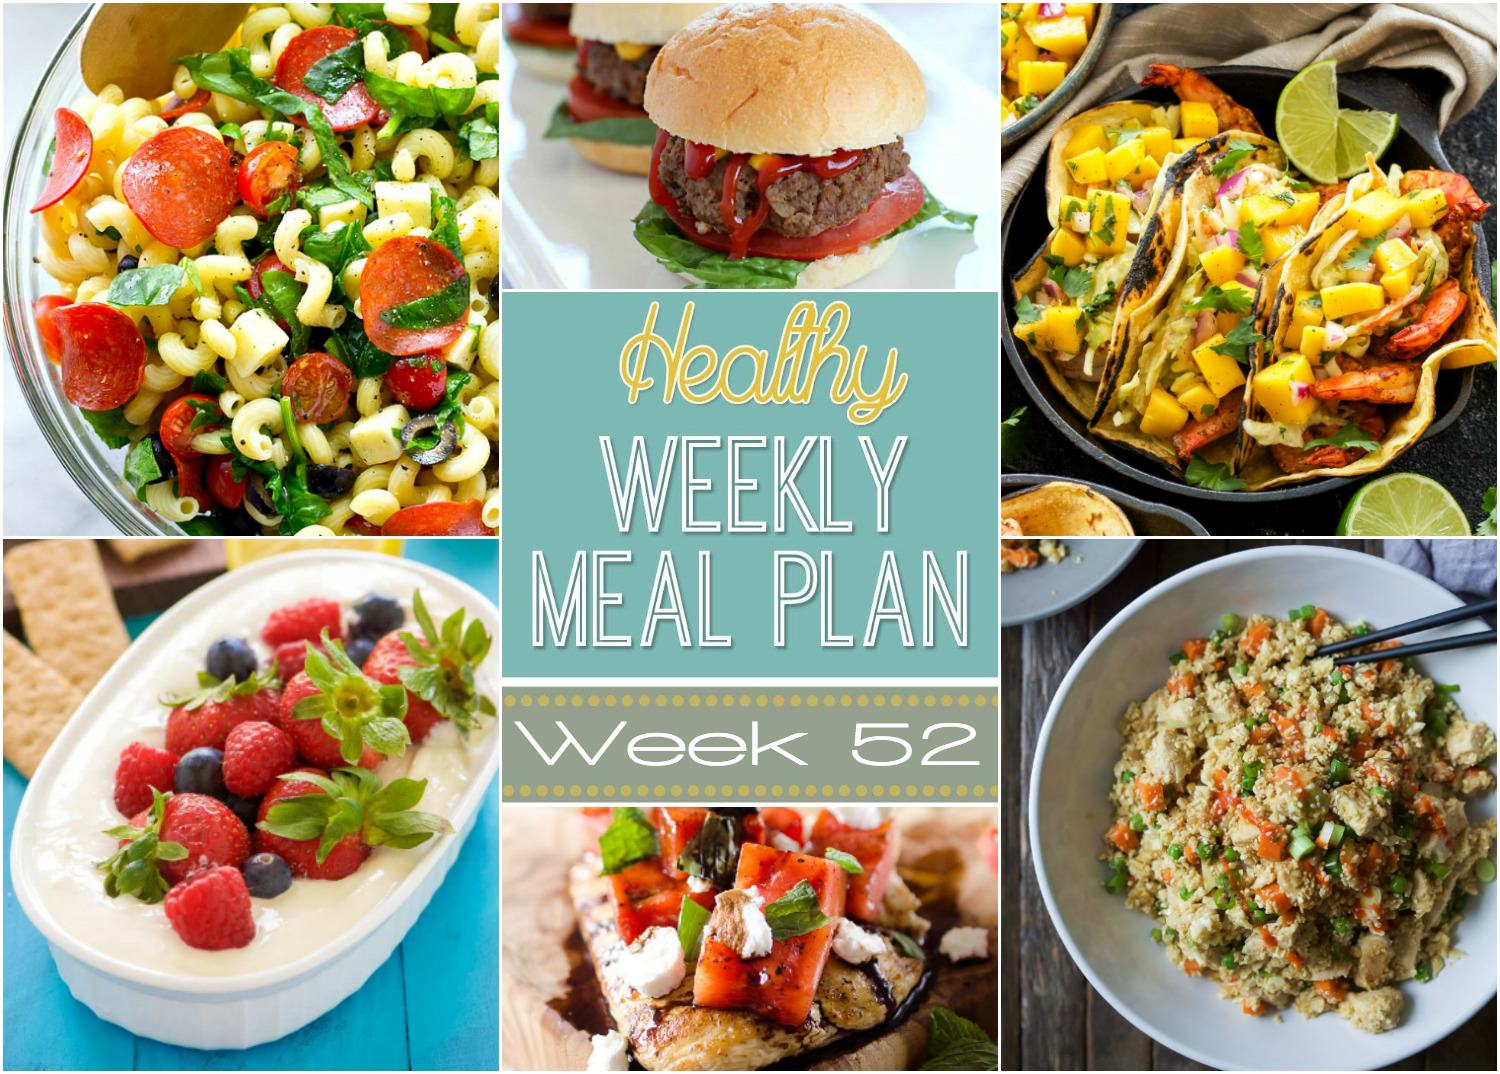 Week 52 already has me drooling! Like Grilled Shrimp Tacos with mango salsa and wholesome banana muffins with white chocolate!